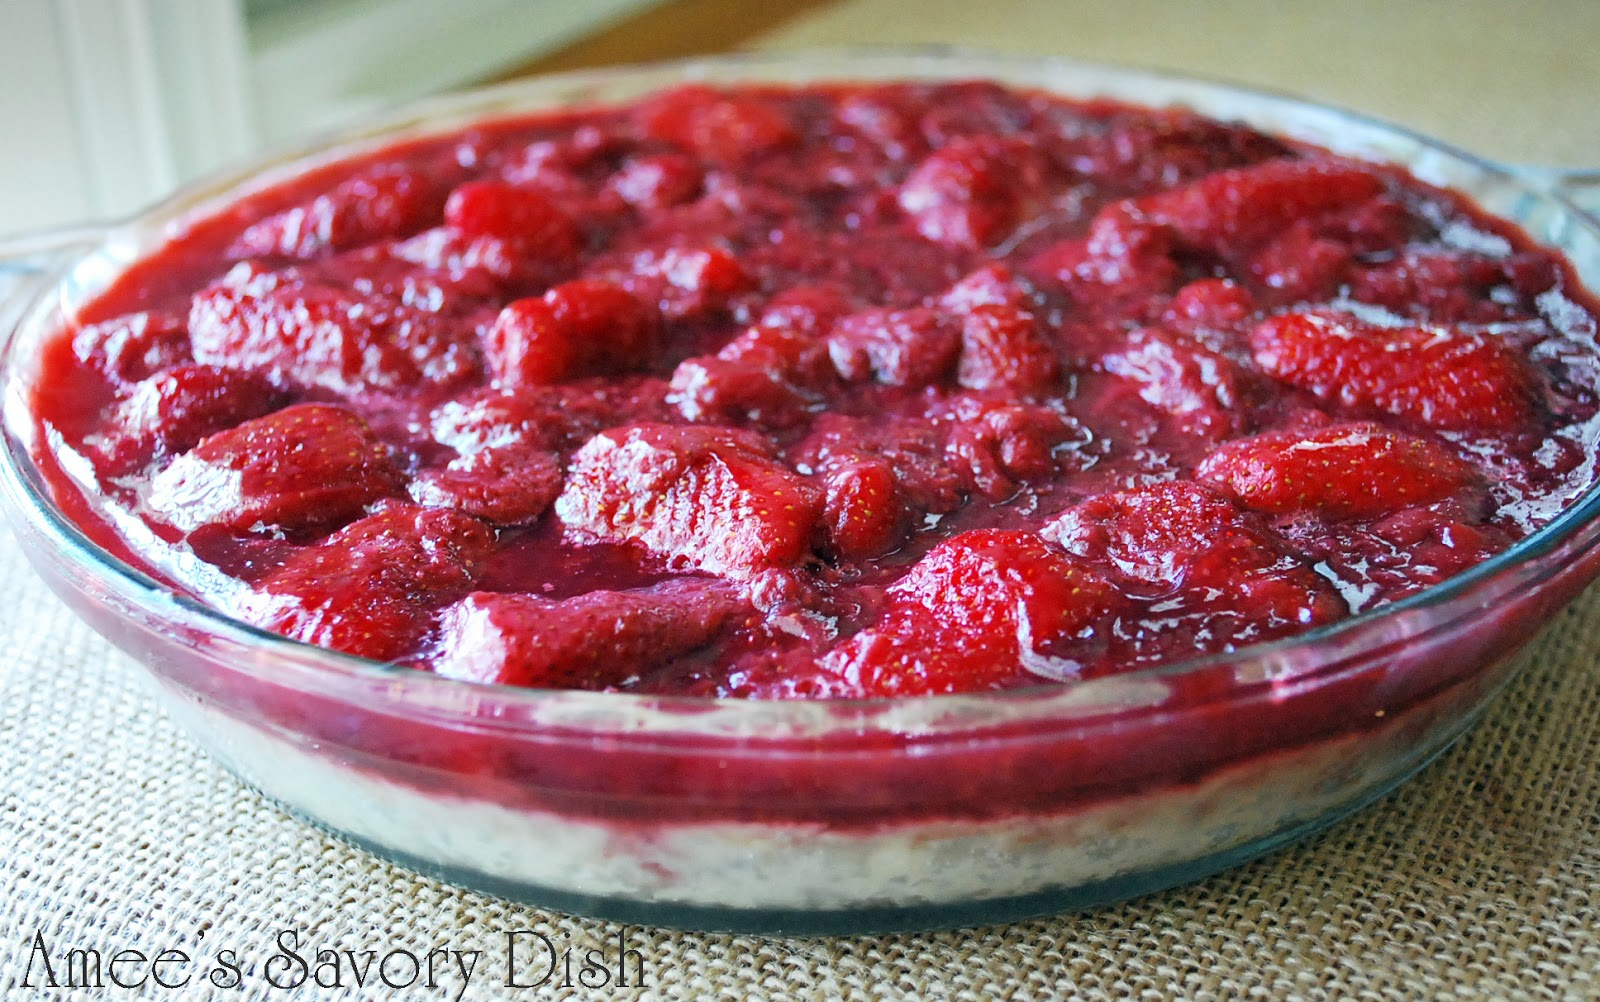 Fresh Strawberry Pie with Grain-Free Crust - Amee's Savory Dish